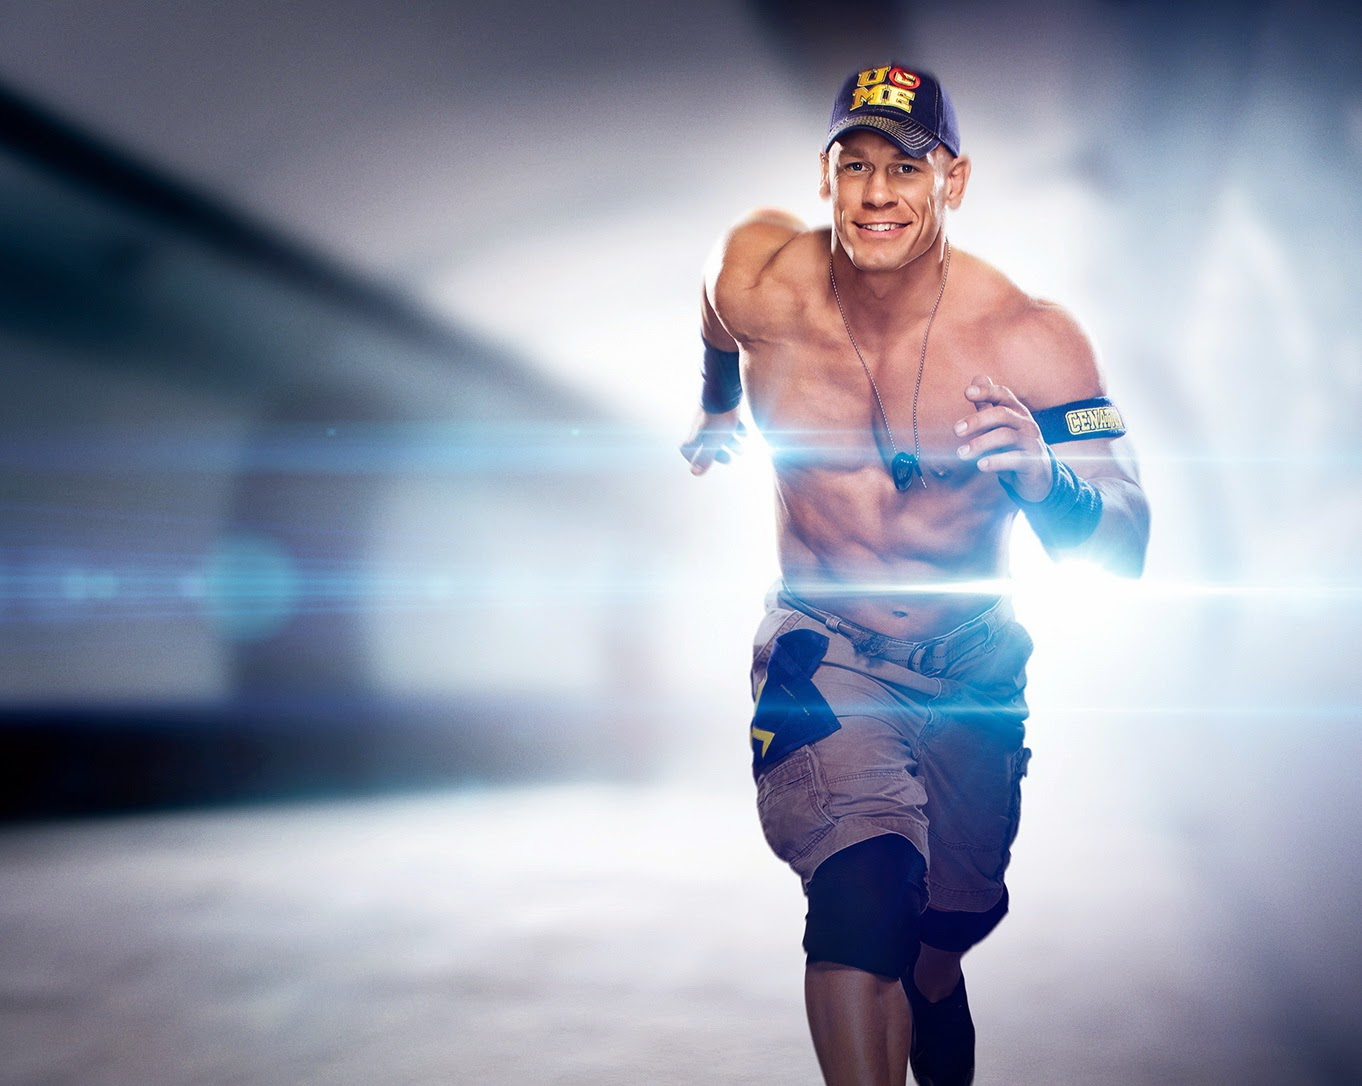 john cena wwe wallpaper 2014 john cena wwe wallpaper 2014 john cena 1362x1086